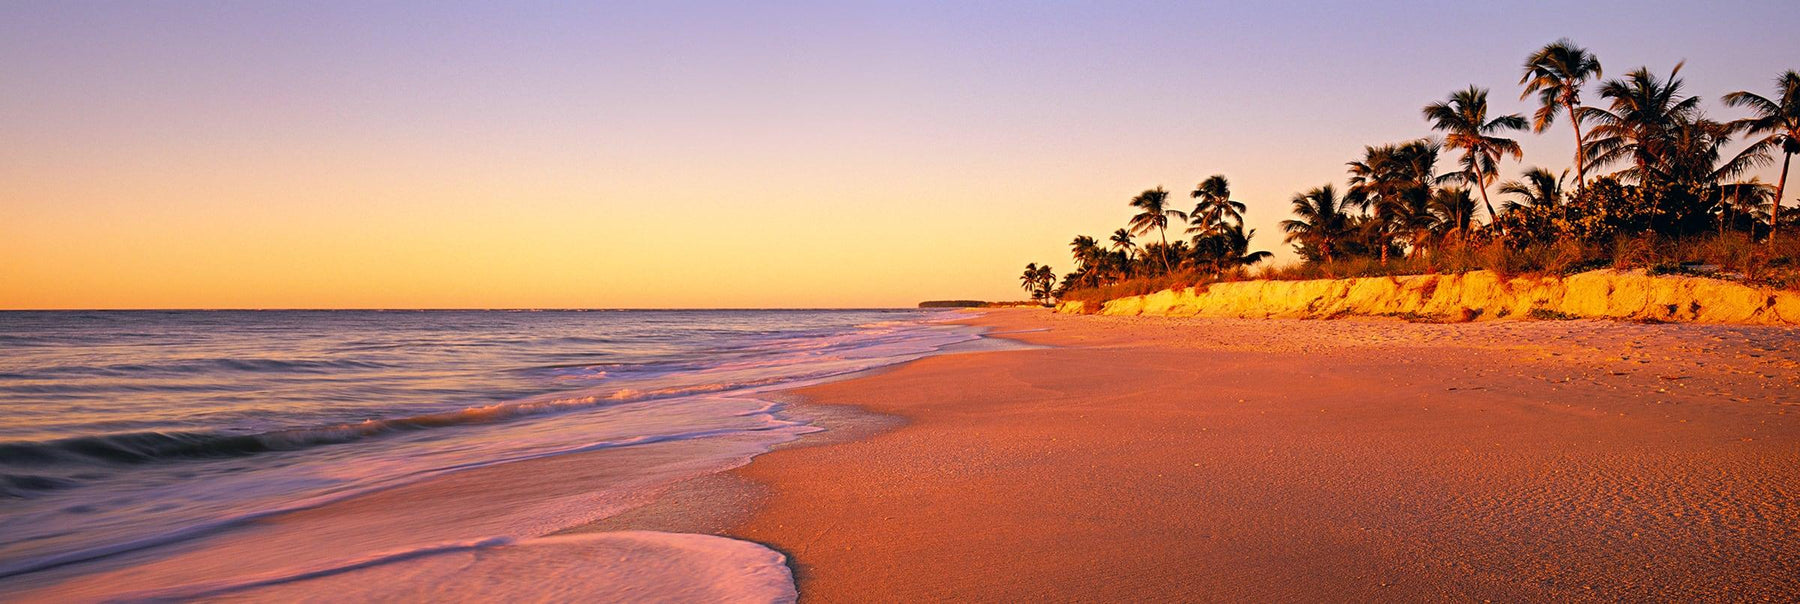 Golden sand beach lined with Palm trees on the shores of Captiva Island Florida